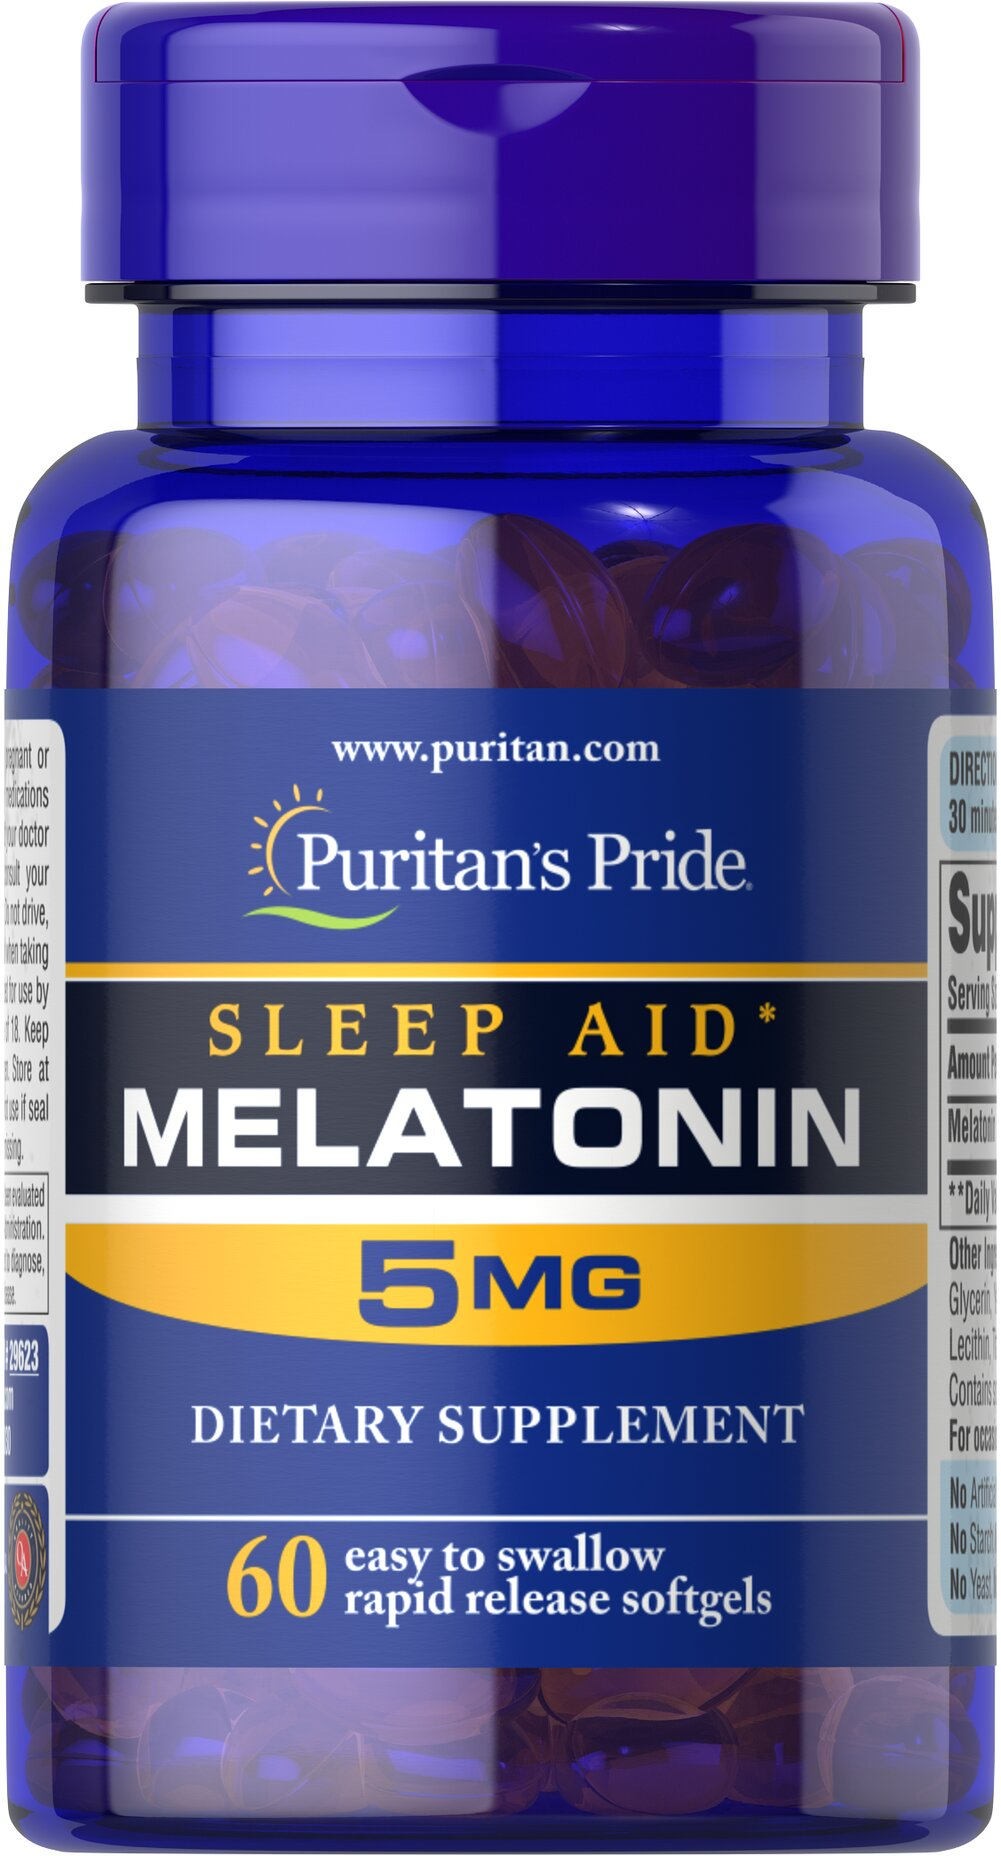 Extra Strength Melatonin 5 mg <ul><li>Extra Strength Melatonin is excellent for those experiencing jet lag or occasional sleeplessness.**</li><li>Melatoin helps maintain nighttime blood pressure levels already within a normal range, which may contribute to restful sleep.** </li><li>Convenient Rapid Release Softgel</li><li>Melatonin helps you fall asleep quickly and stay asleep longer**</li></ul> 60 Softgels 5 mg $7.29